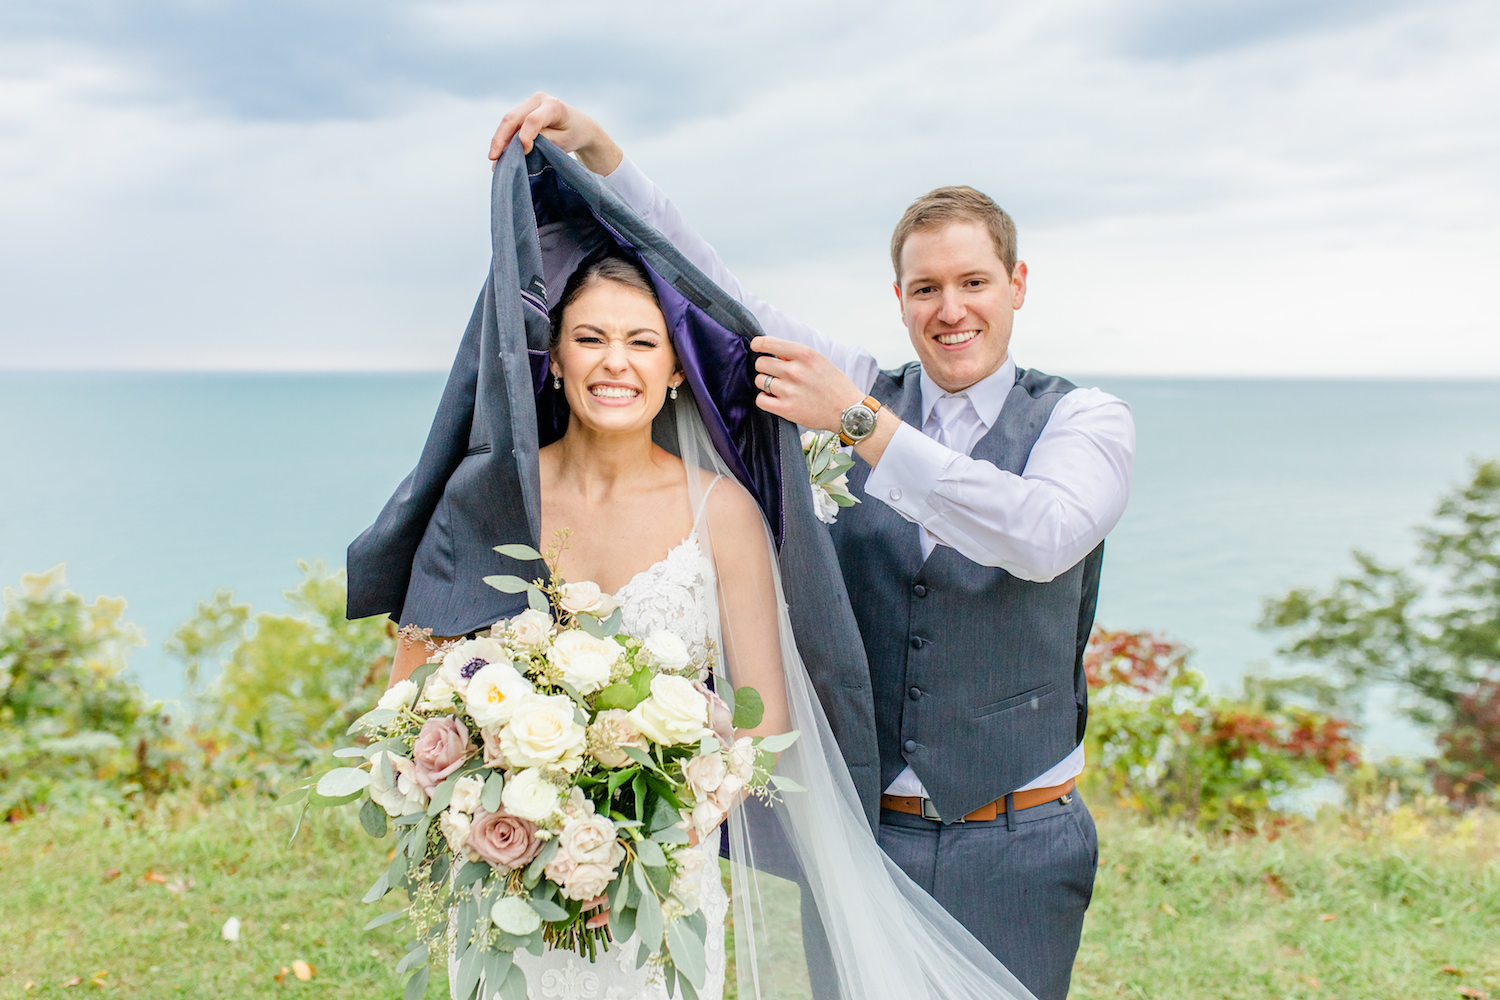 Groom covering bride at their lakehouse wedding